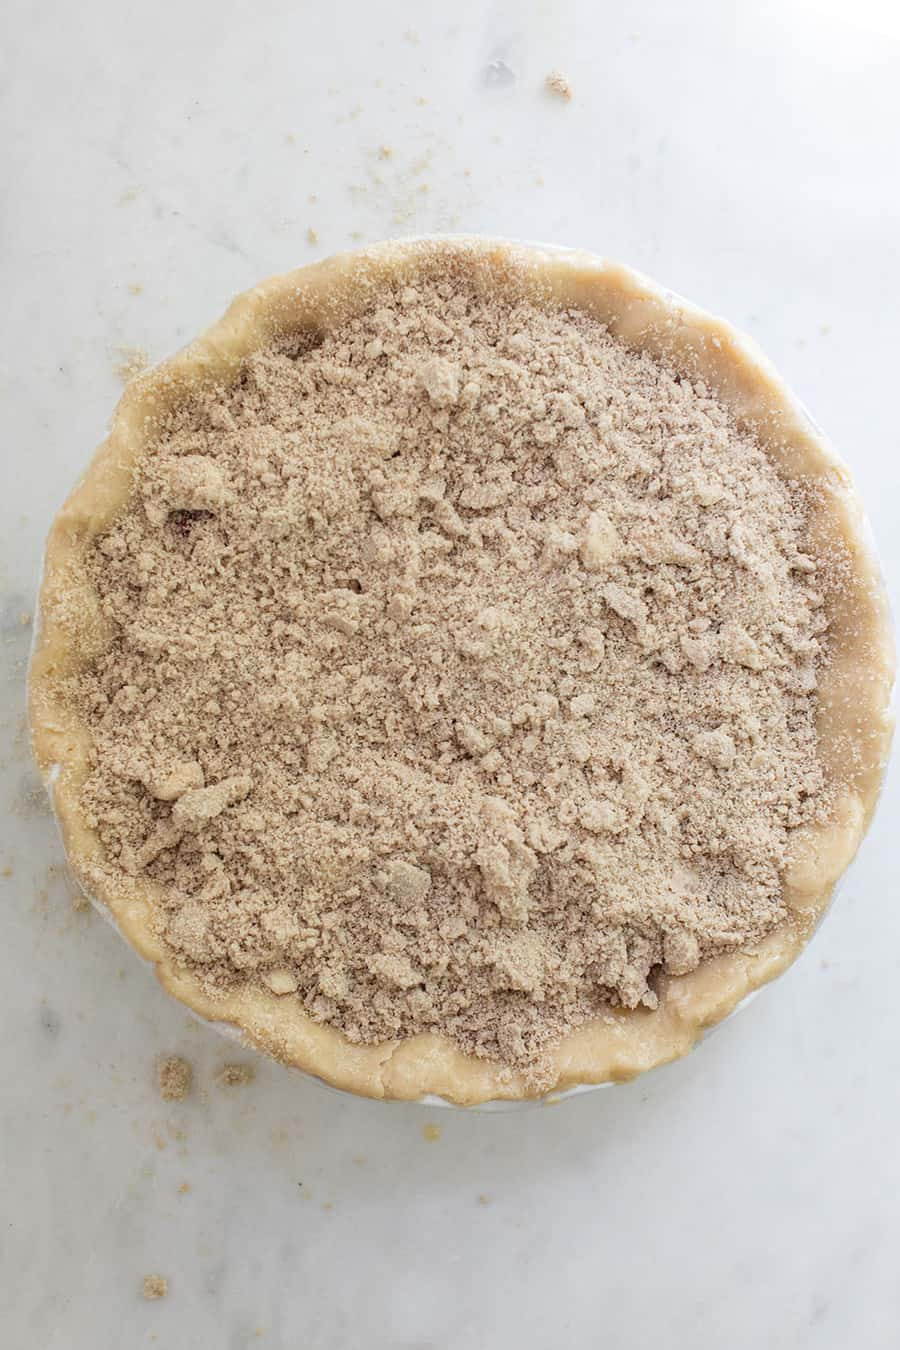 Uncooked pie with a crumble top.